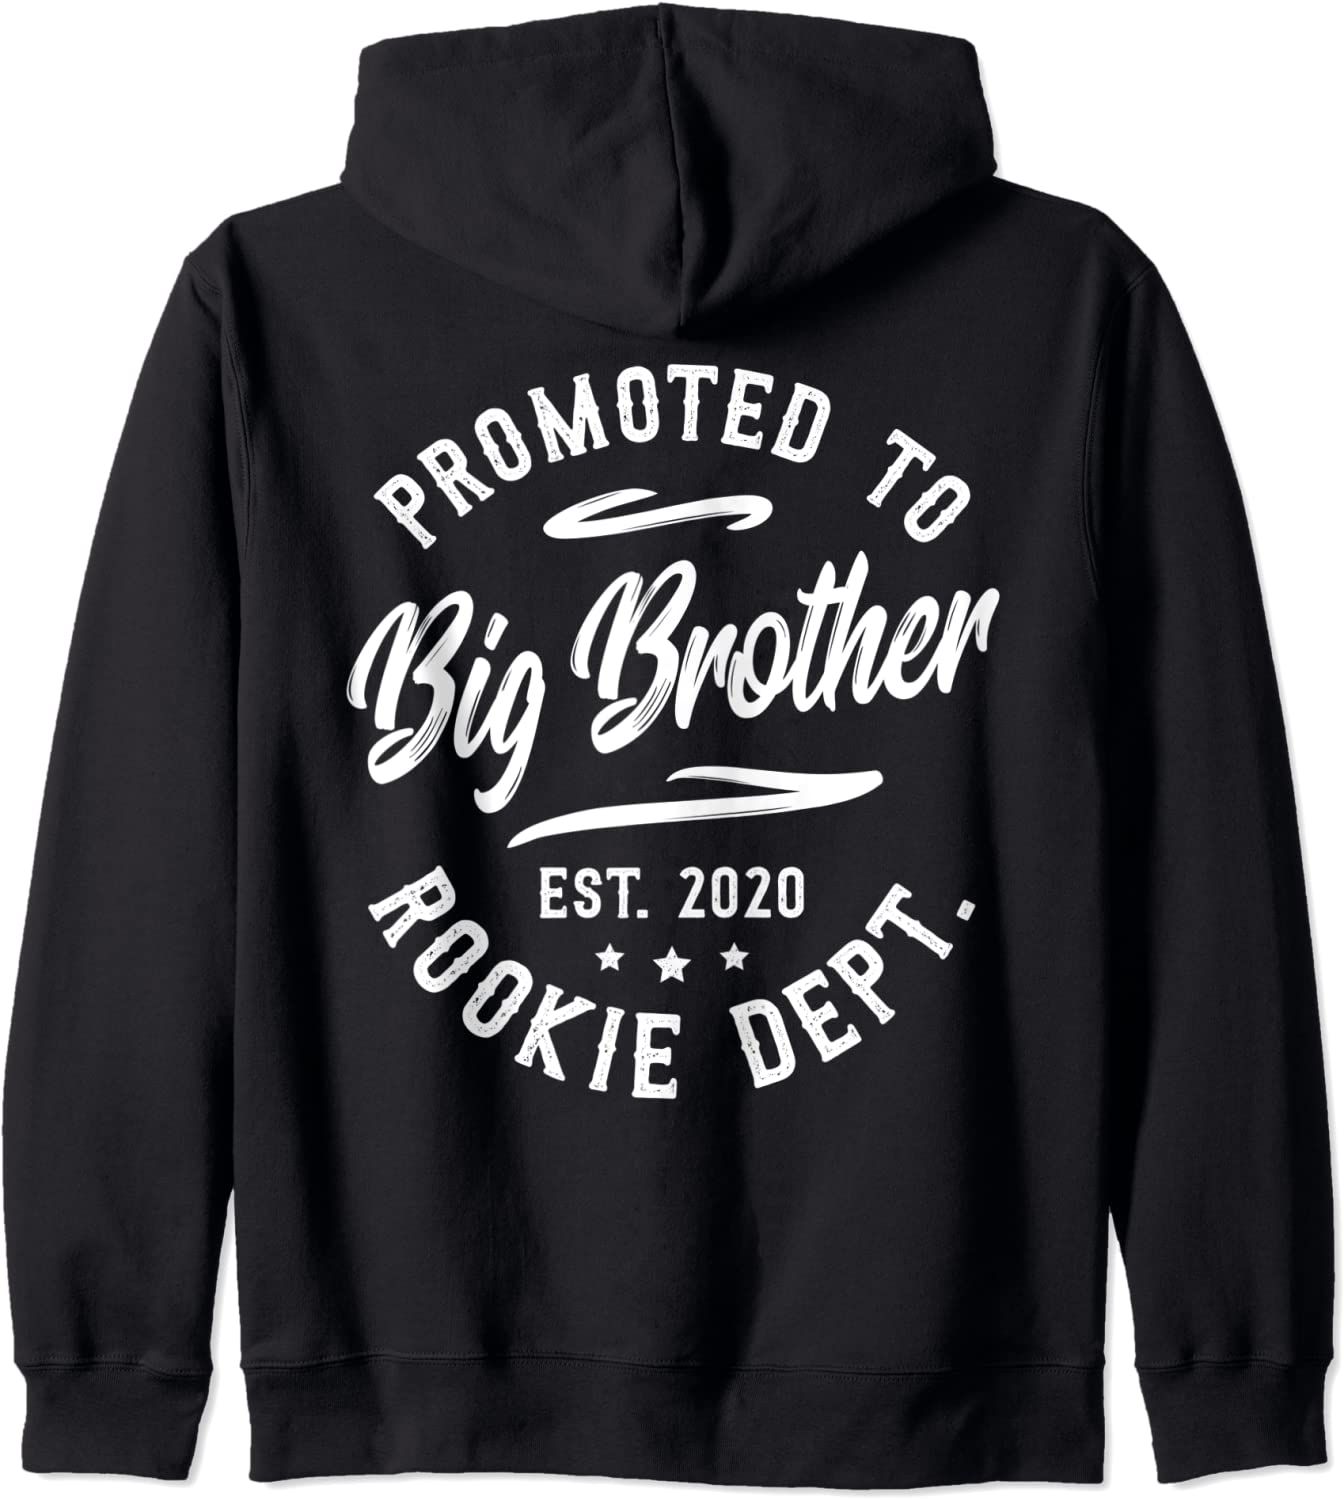 Cheap Promoted To Big Brother Est. 2020 Gift Zip Dept. Rookie Siblings Special Campaign